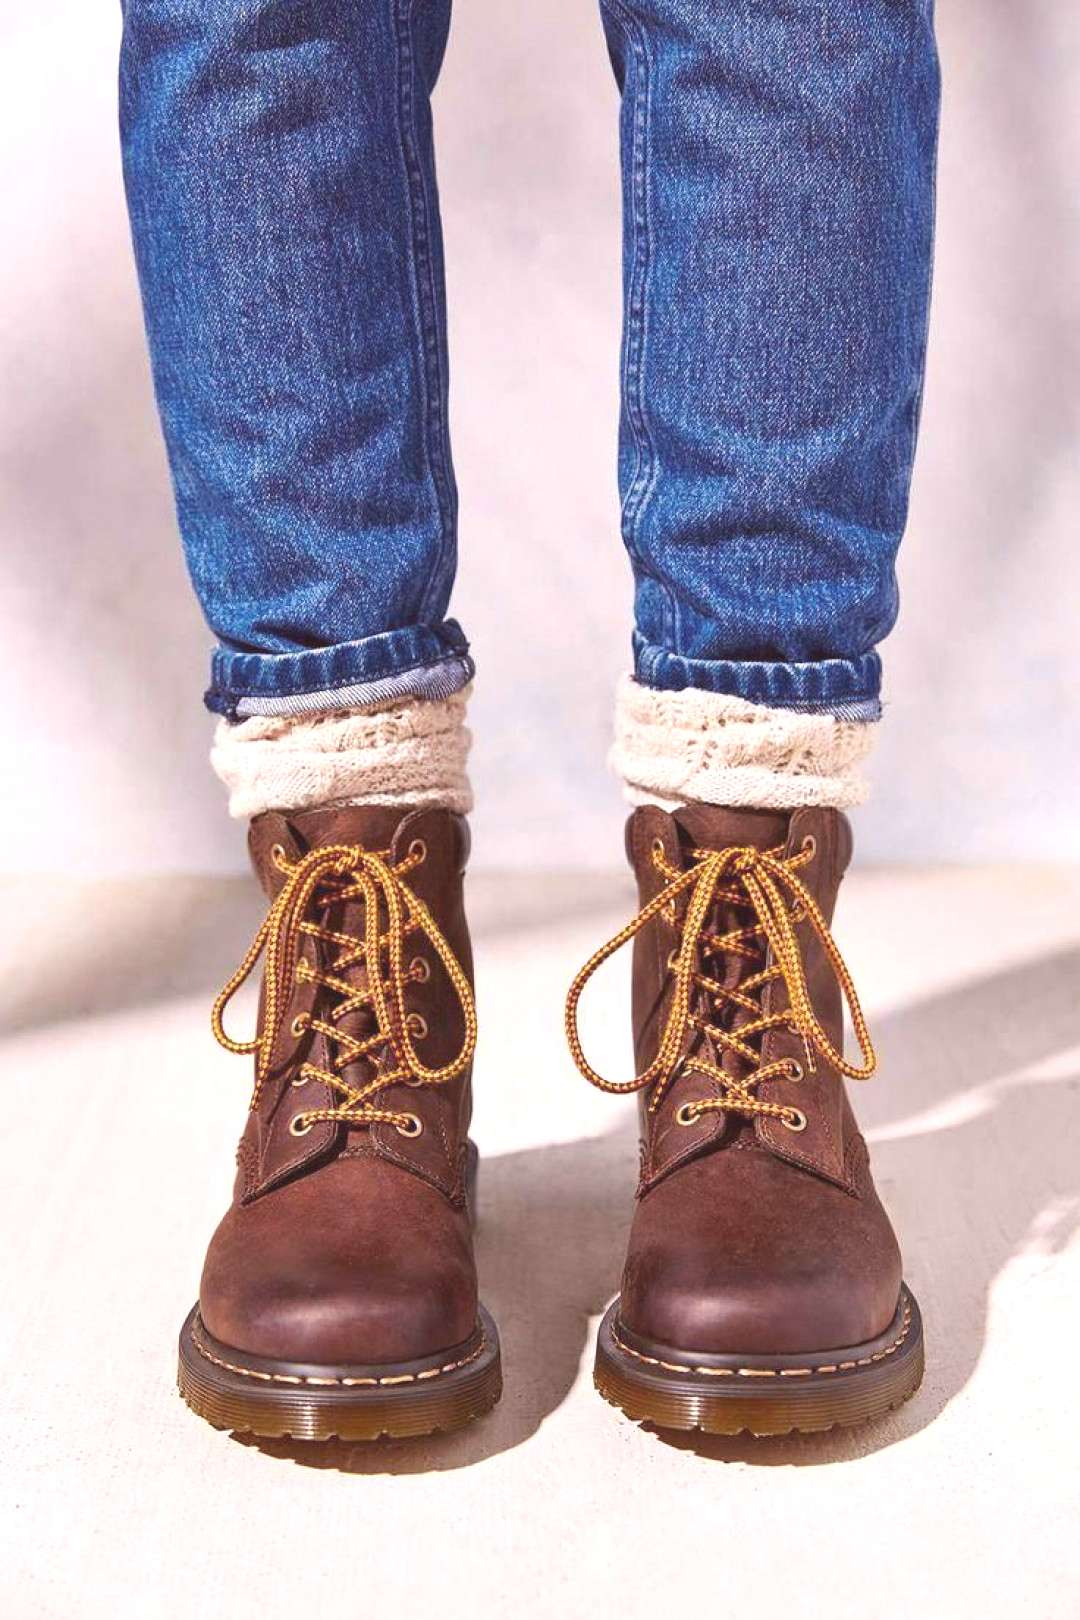 Wear them like you would riding boots chunky boot socks and skinny jeans, rolled up to show off so